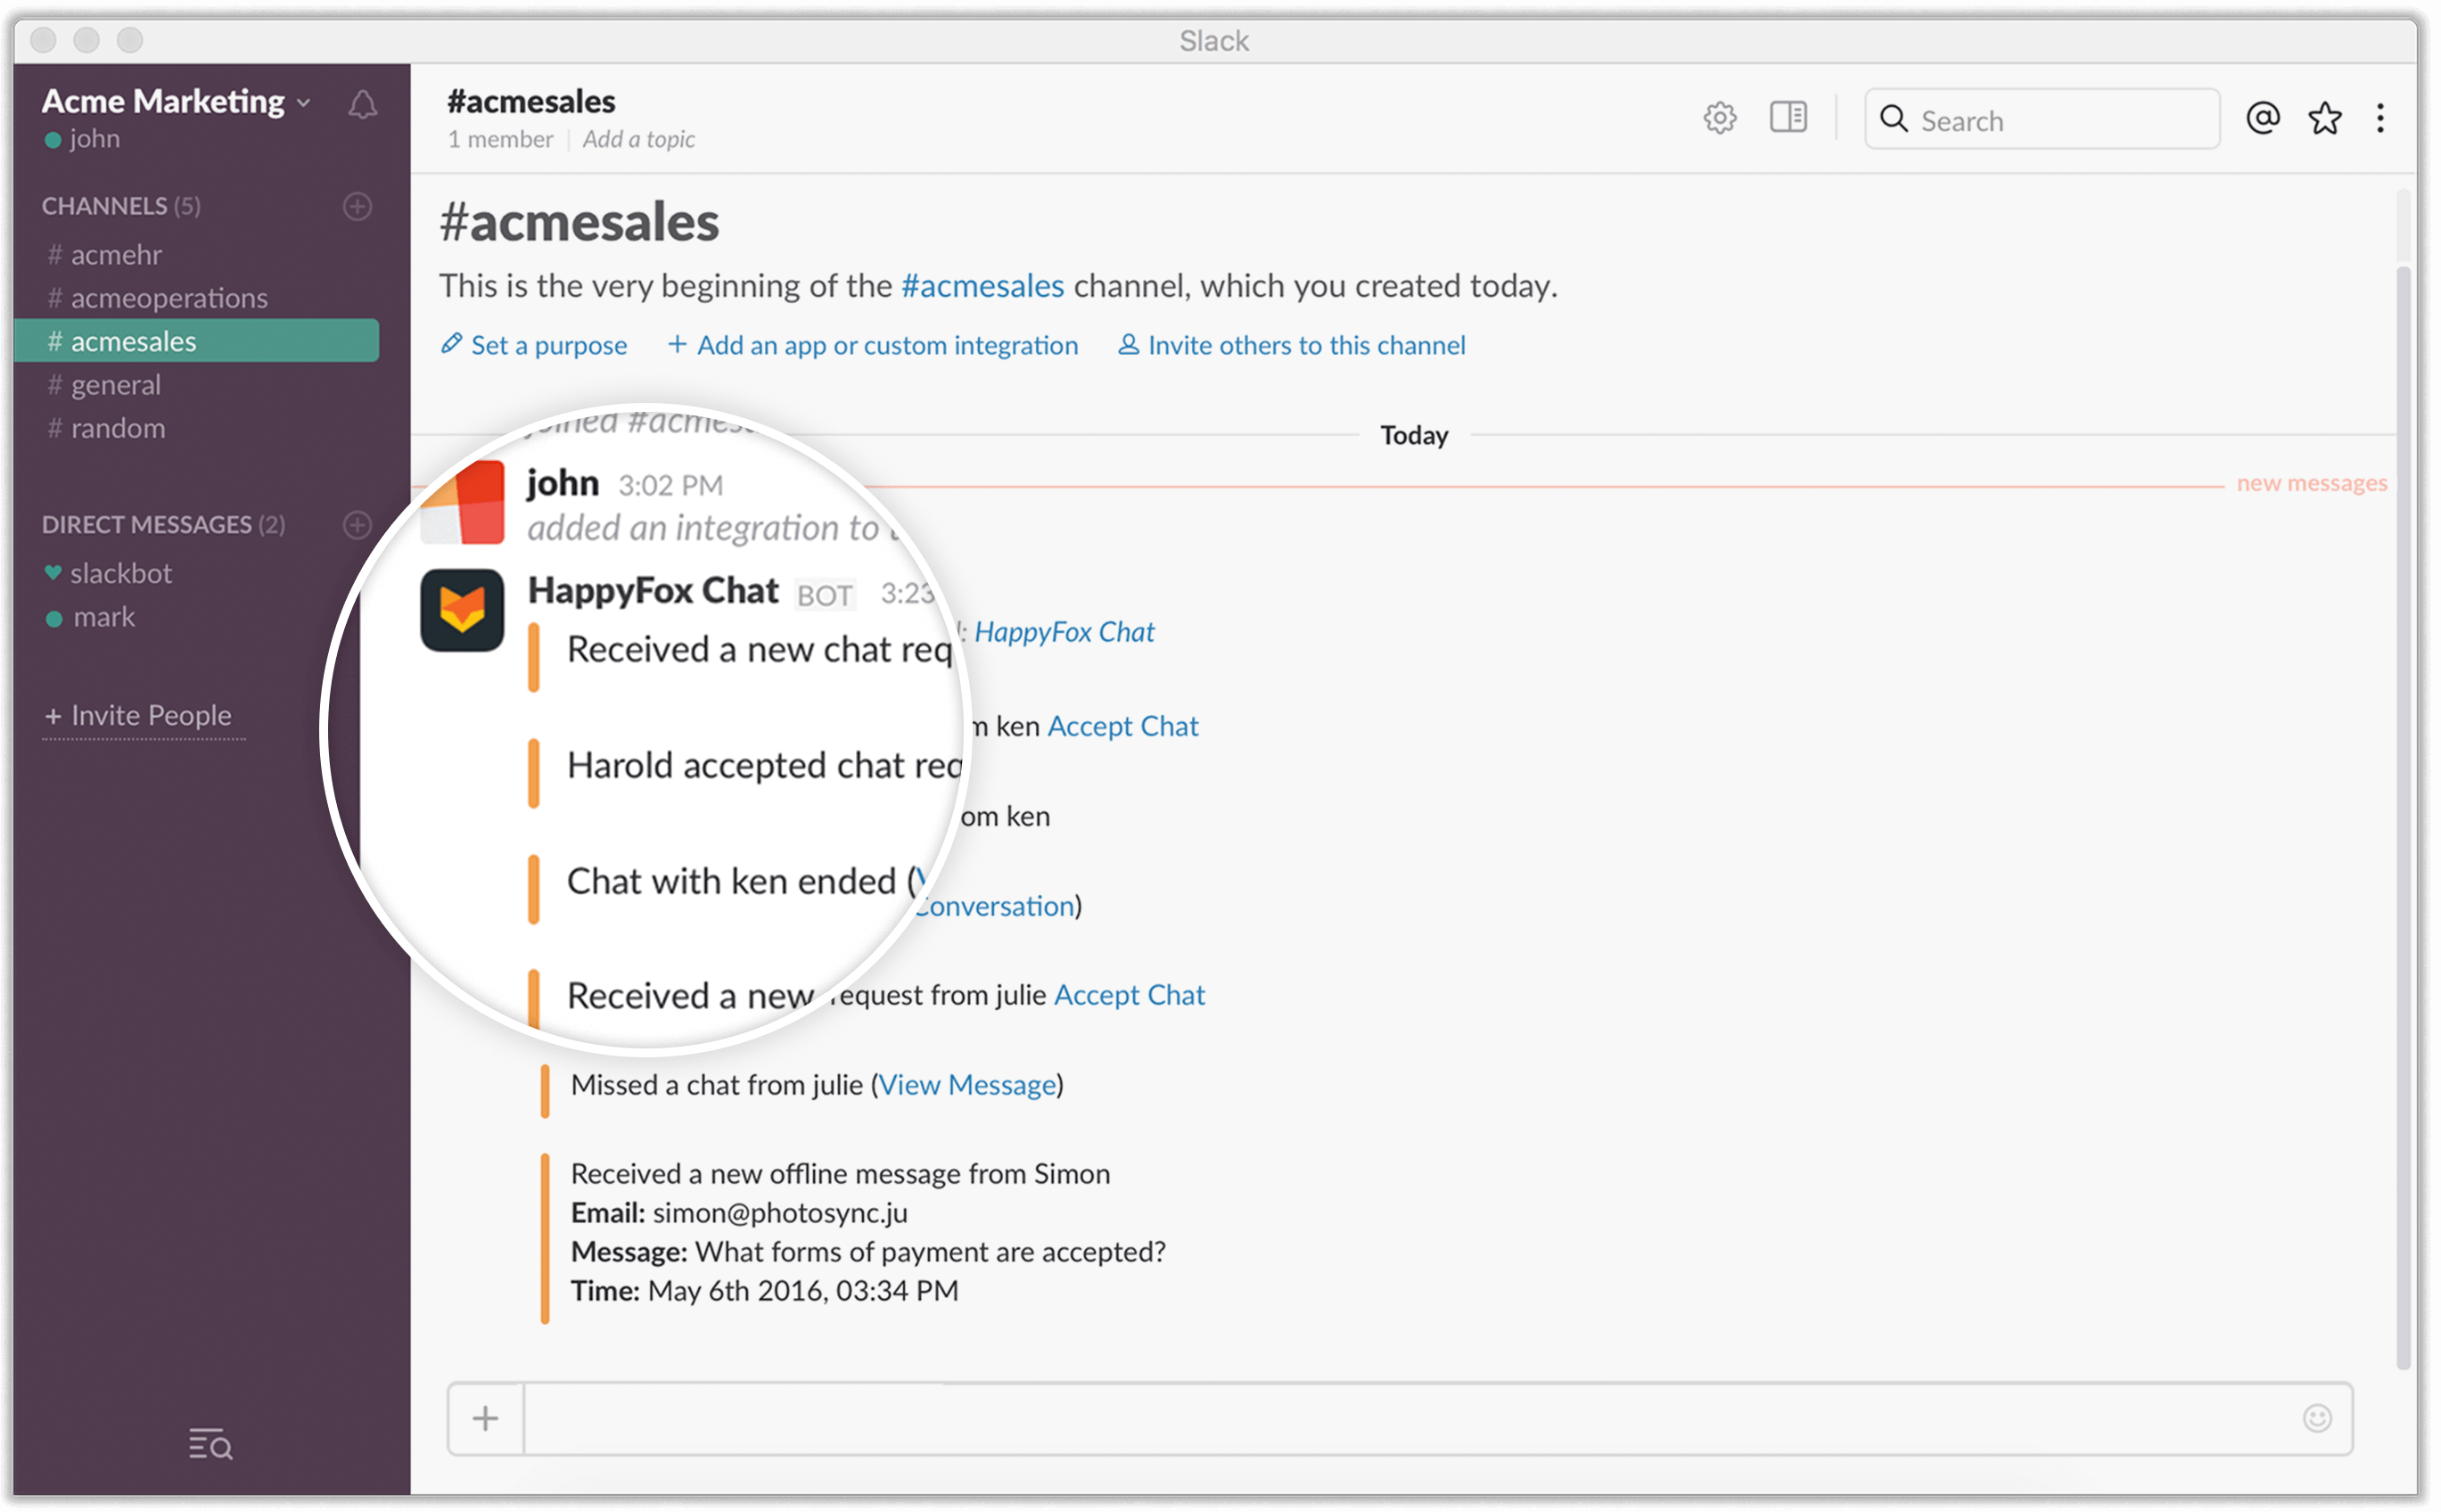 Stay up-to-date on customer support on your slack channel